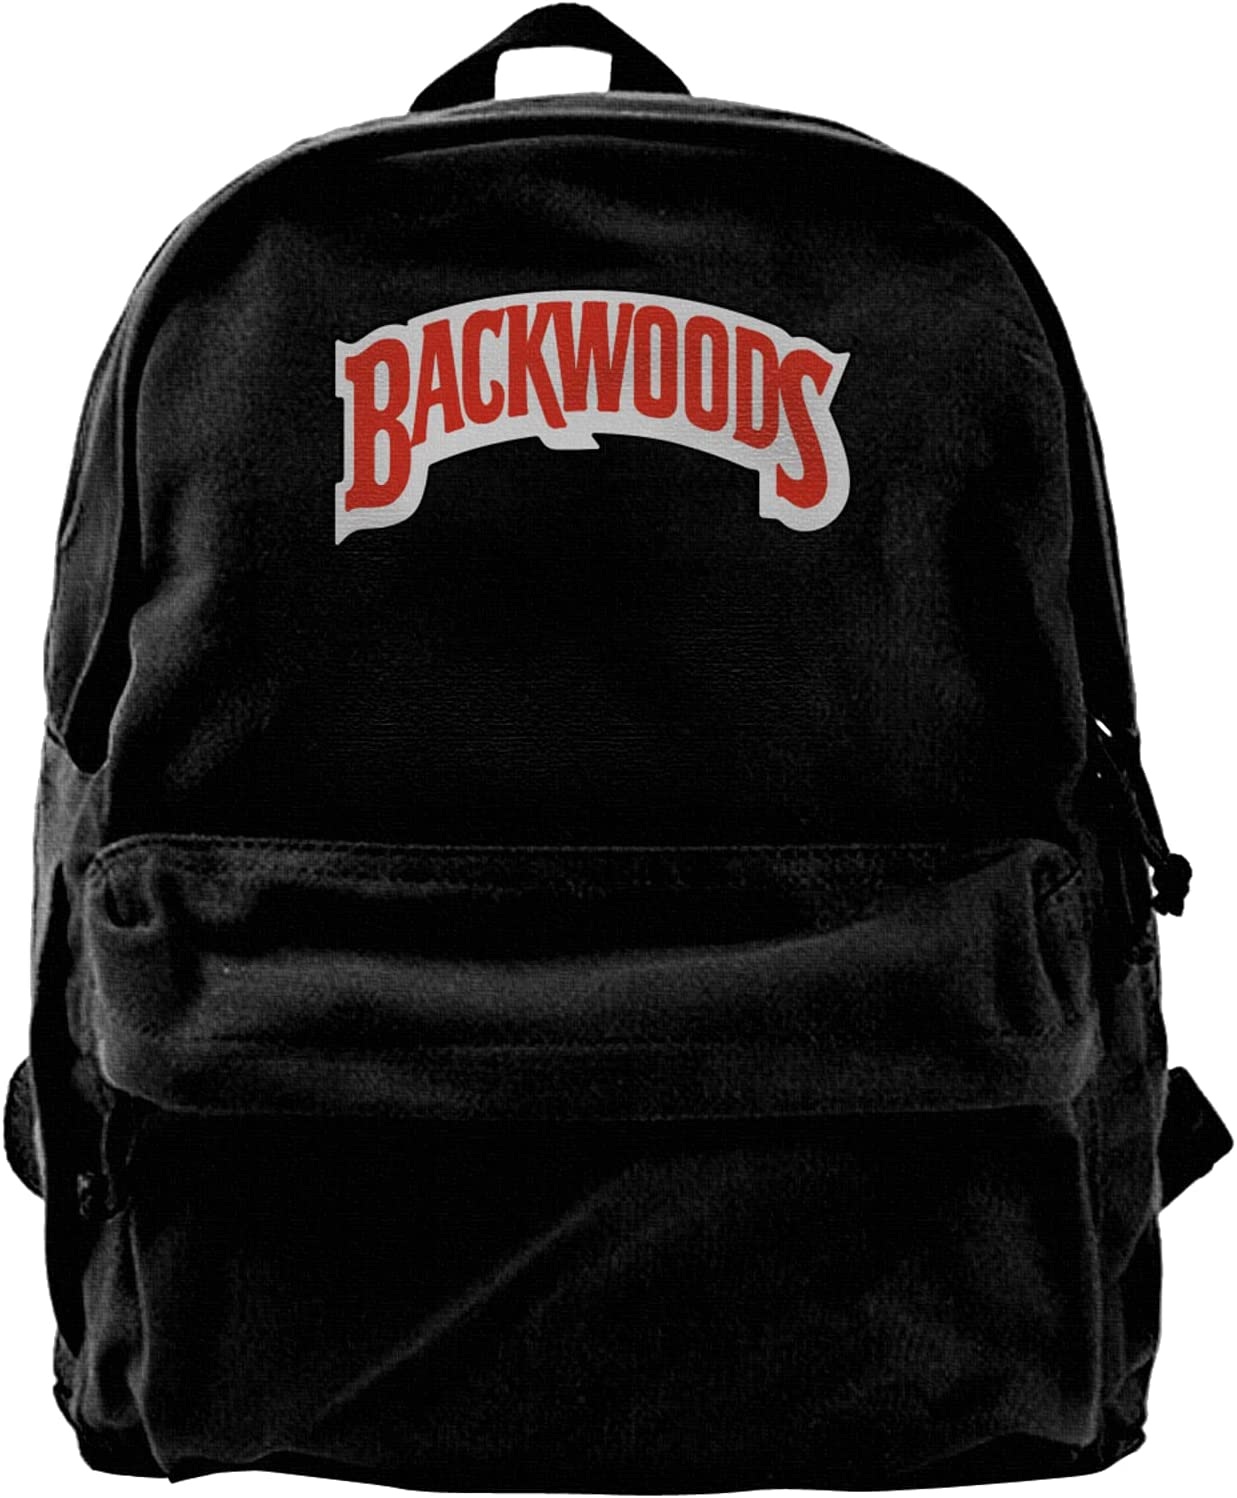 Backwoods Blunts Woods Travel Backpack Mans Max 48% OFF Work For List price Woman'S Boo